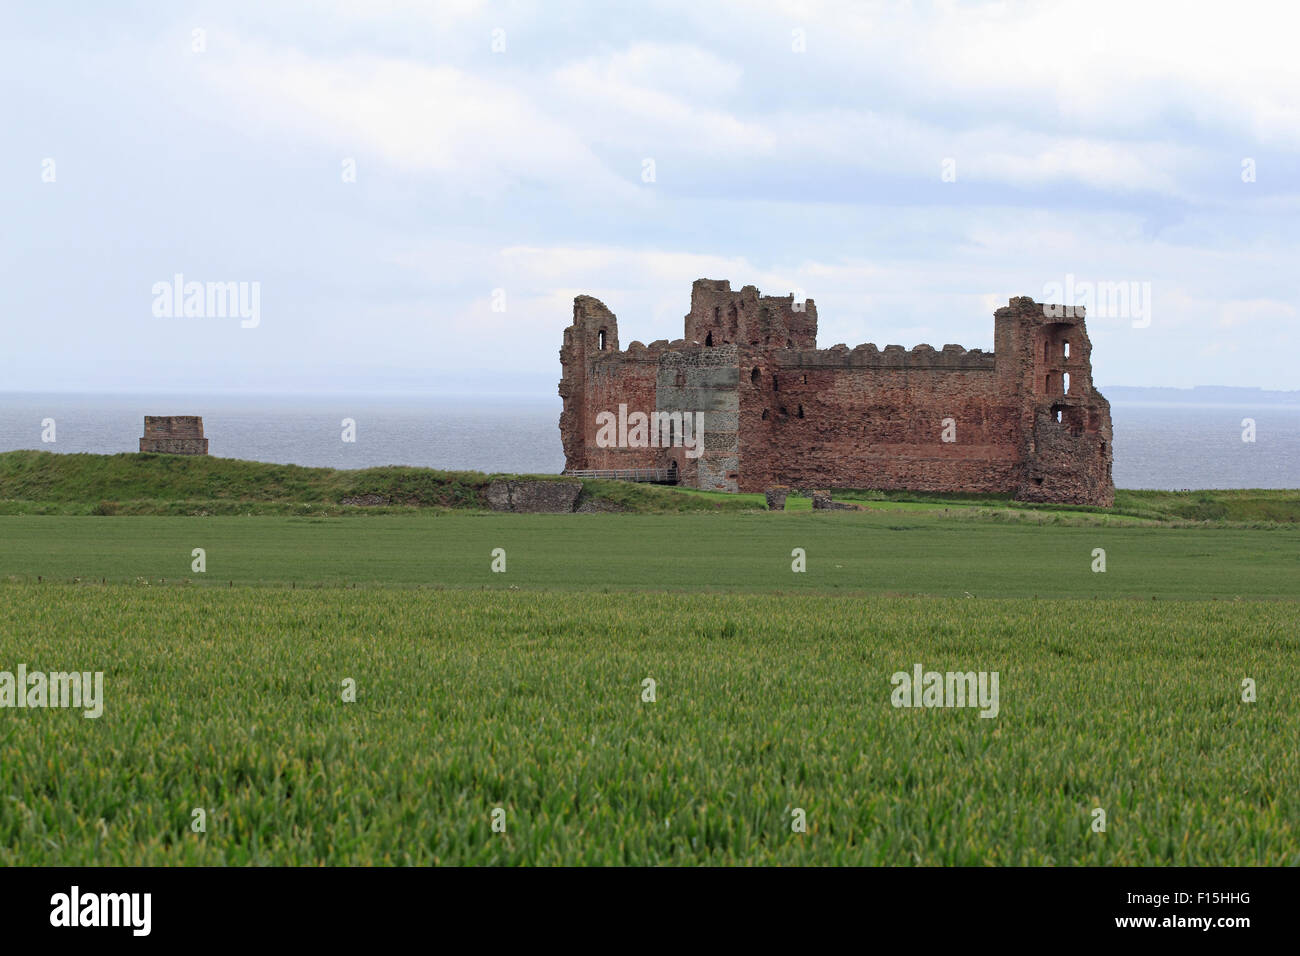 Tantallon Castle, Firth of Forth, North Berwick, East Lothian, Scotland - Stock Image